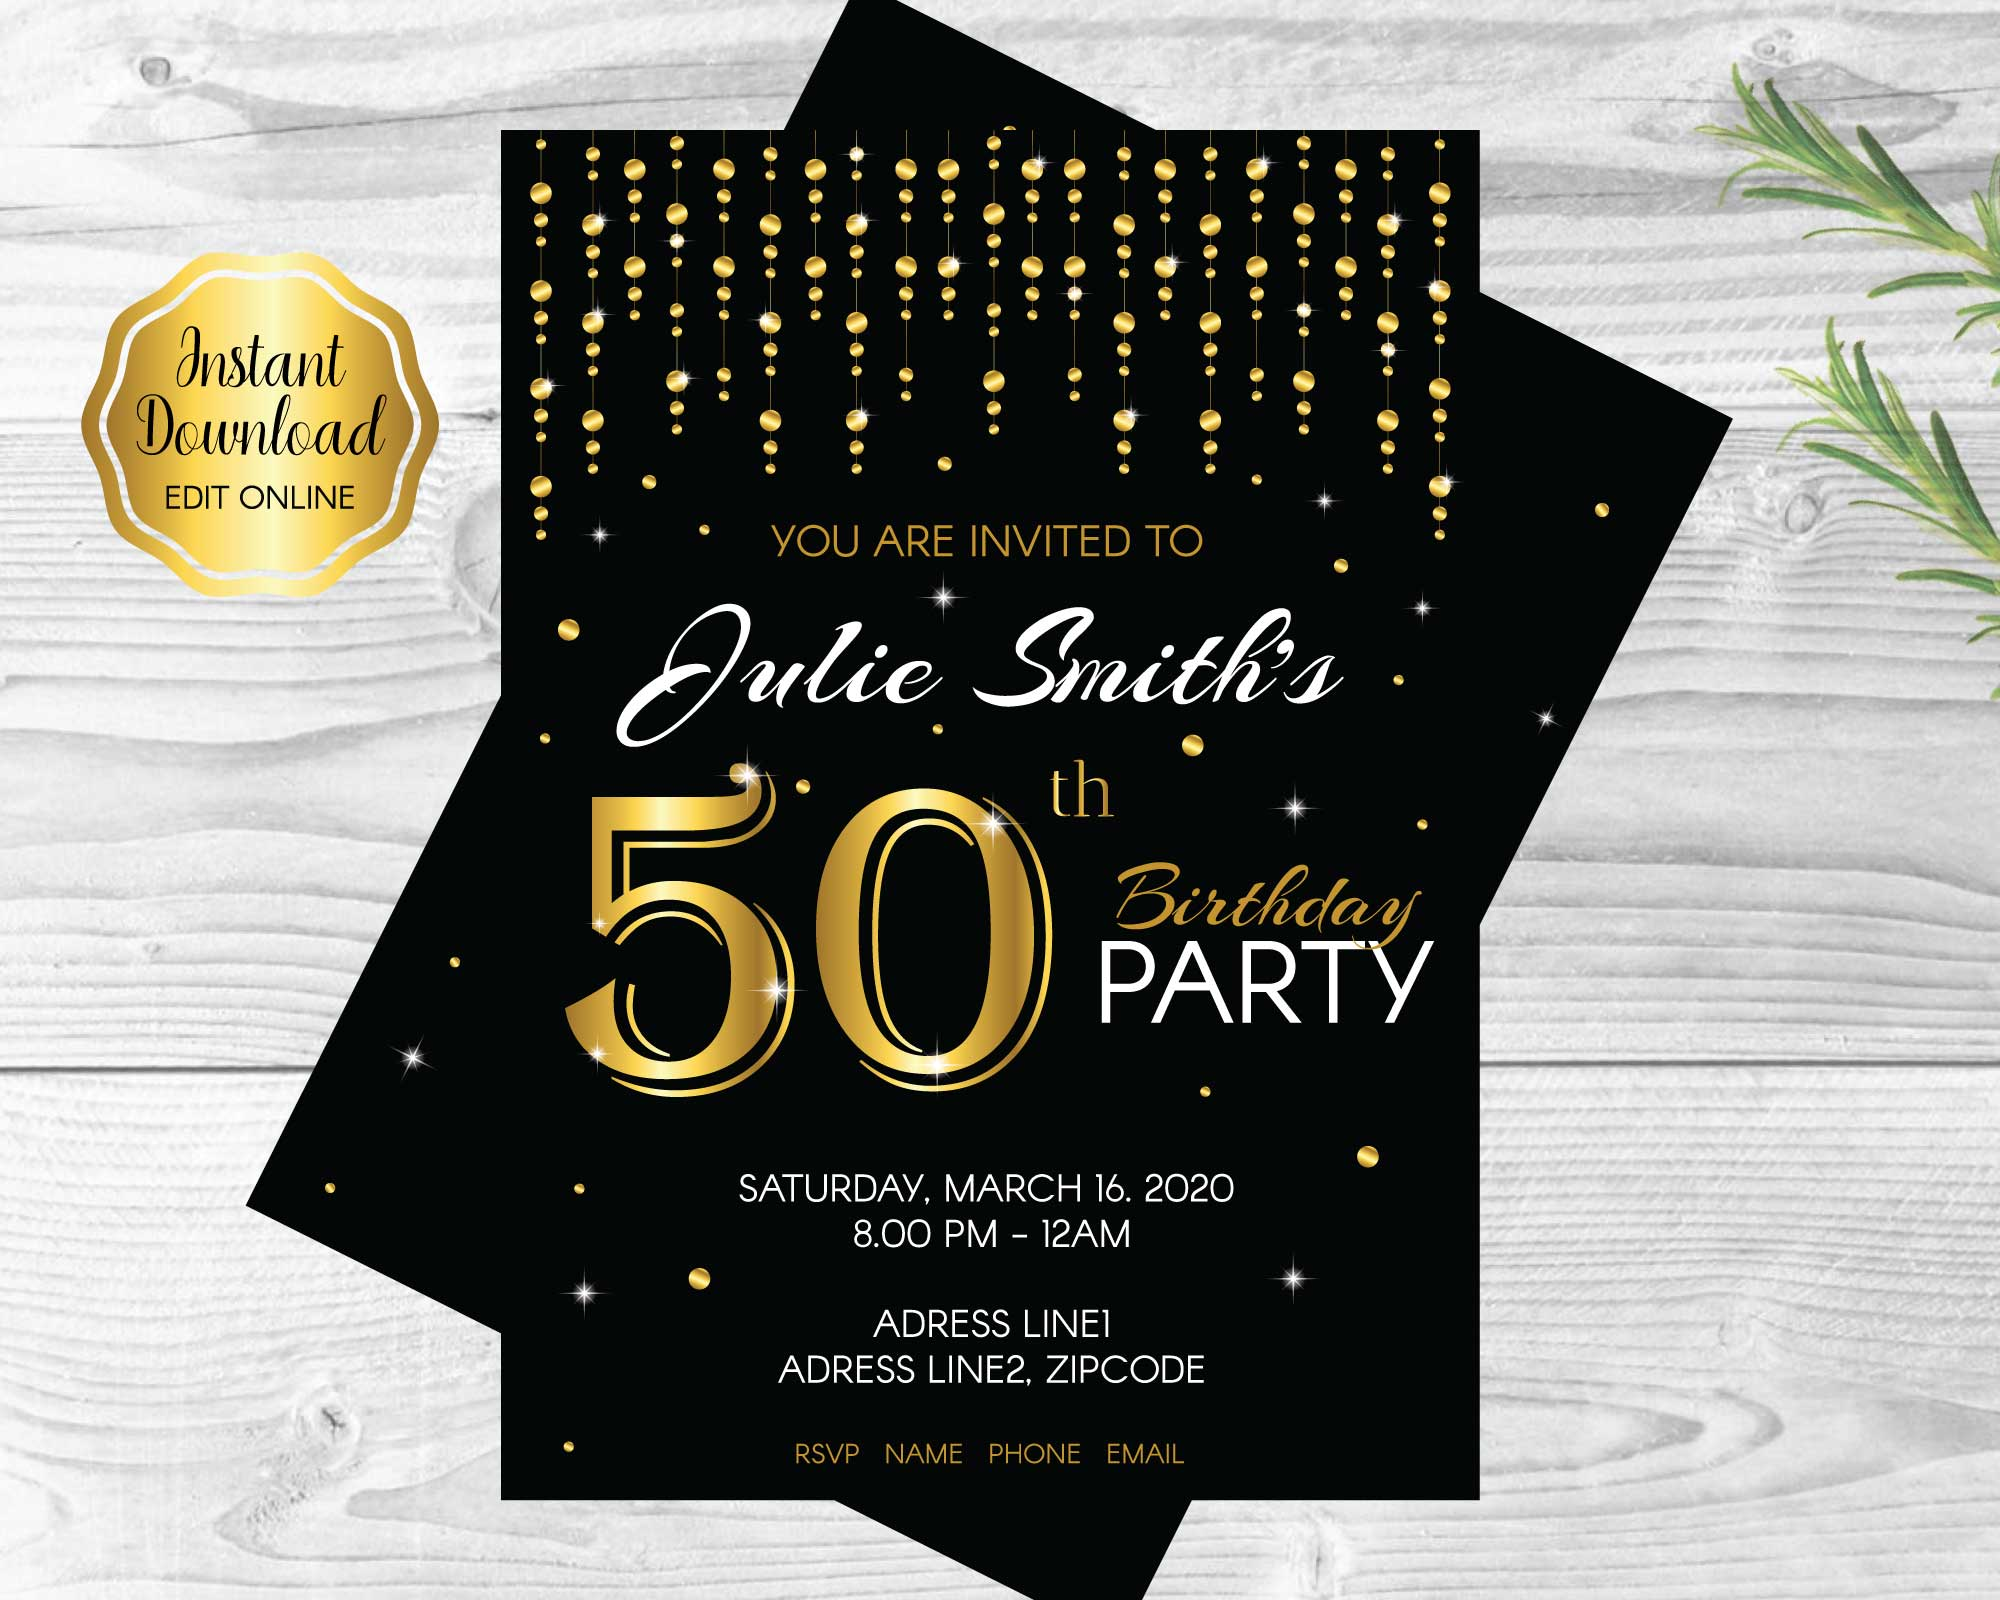 50th Birthday Party Decorations and Invitation – Funtastic Idea